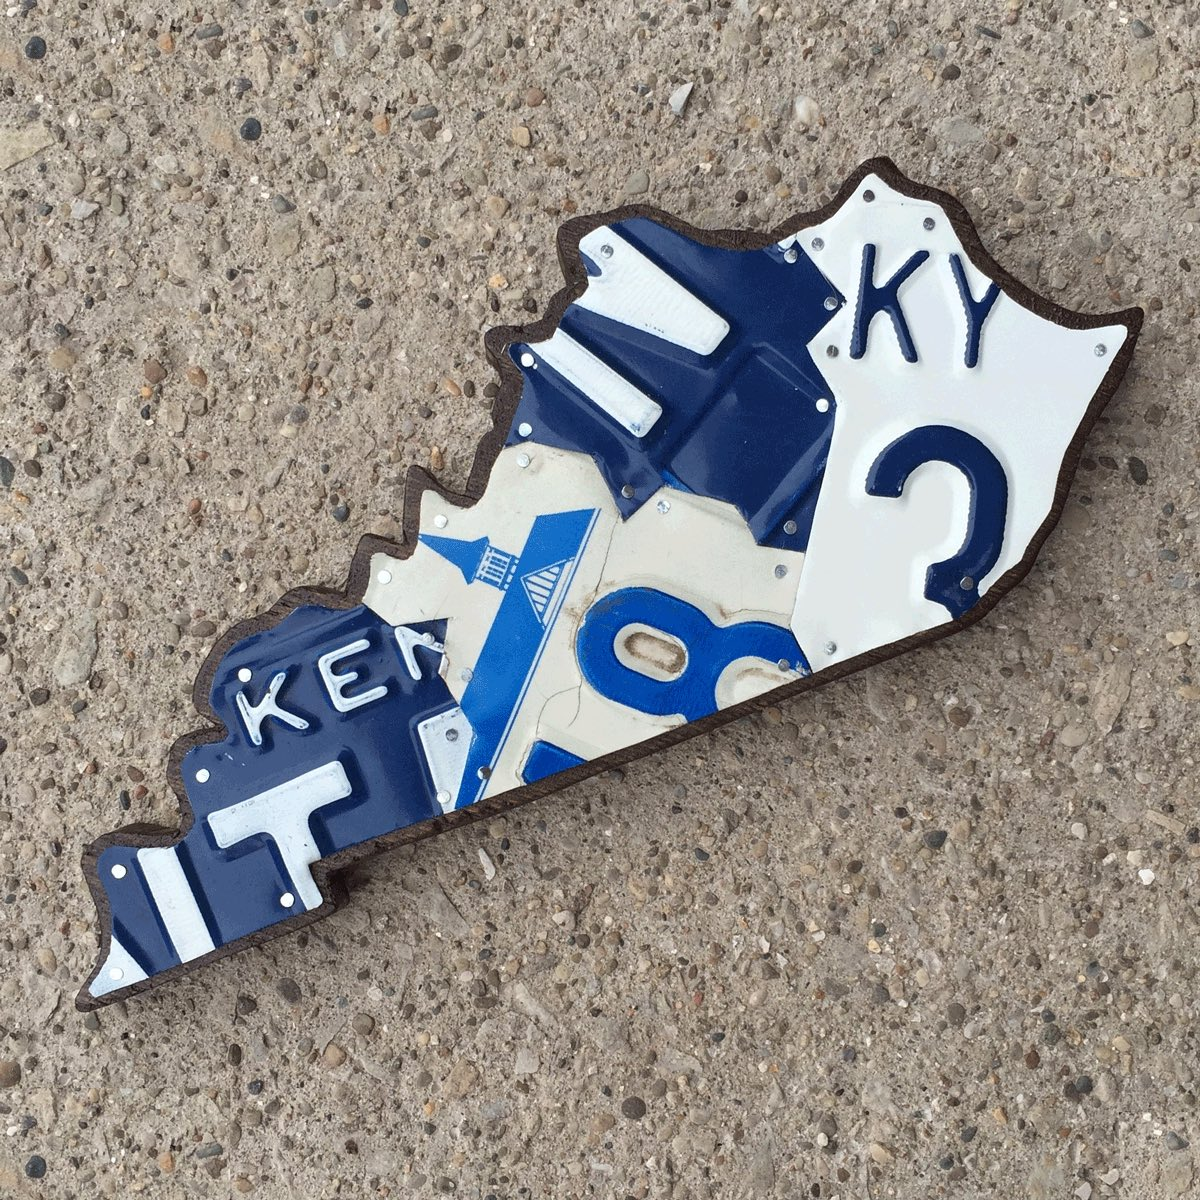 KY SMALL BLUE & WHITE - SIZE: 11 x 5 in.